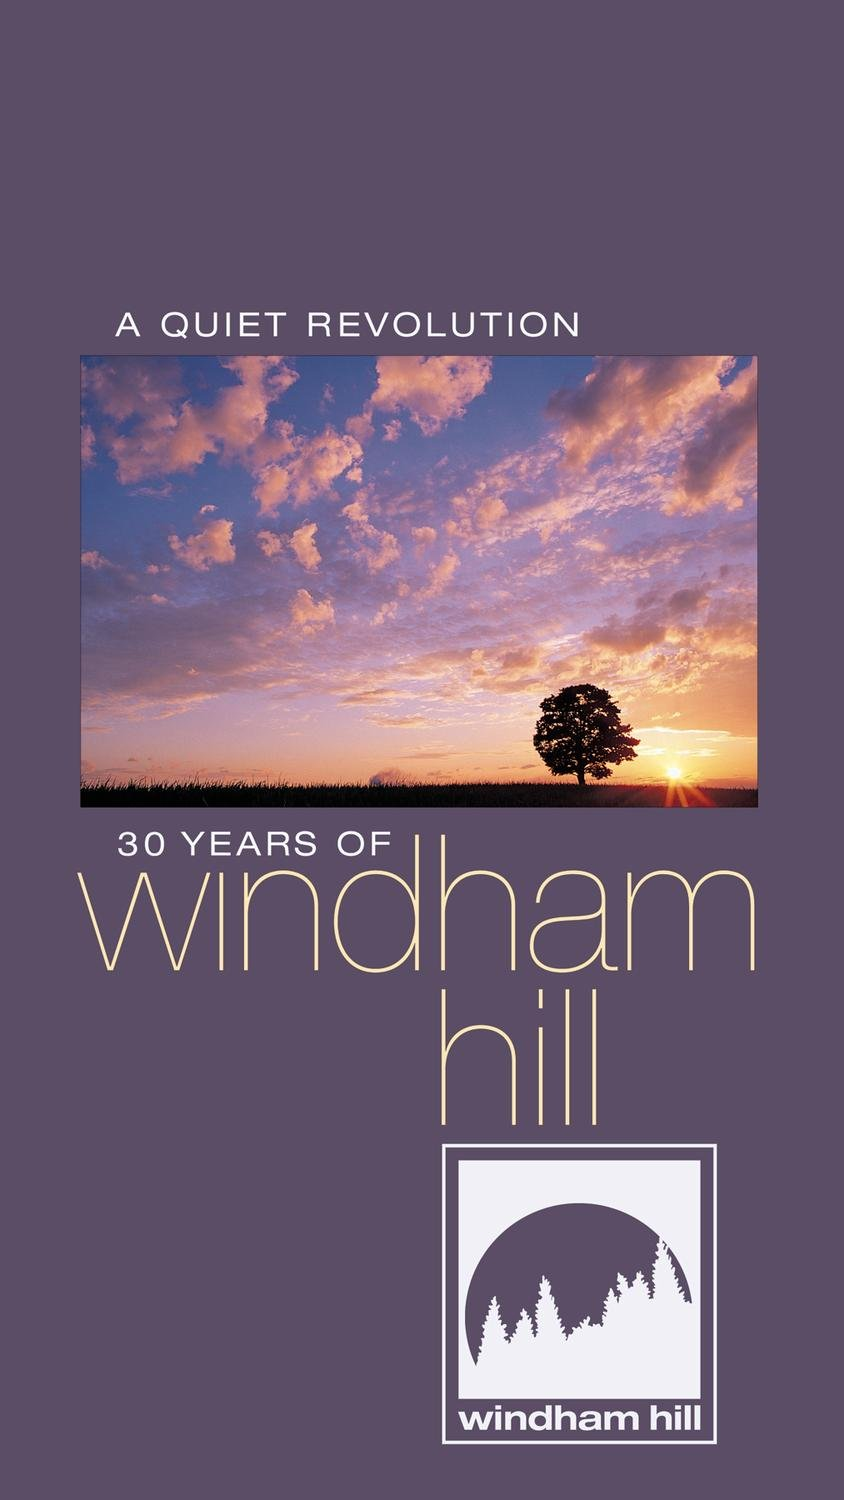 A Quiet Revolution: 30 Years Of Windham Hill by Sony Legacy